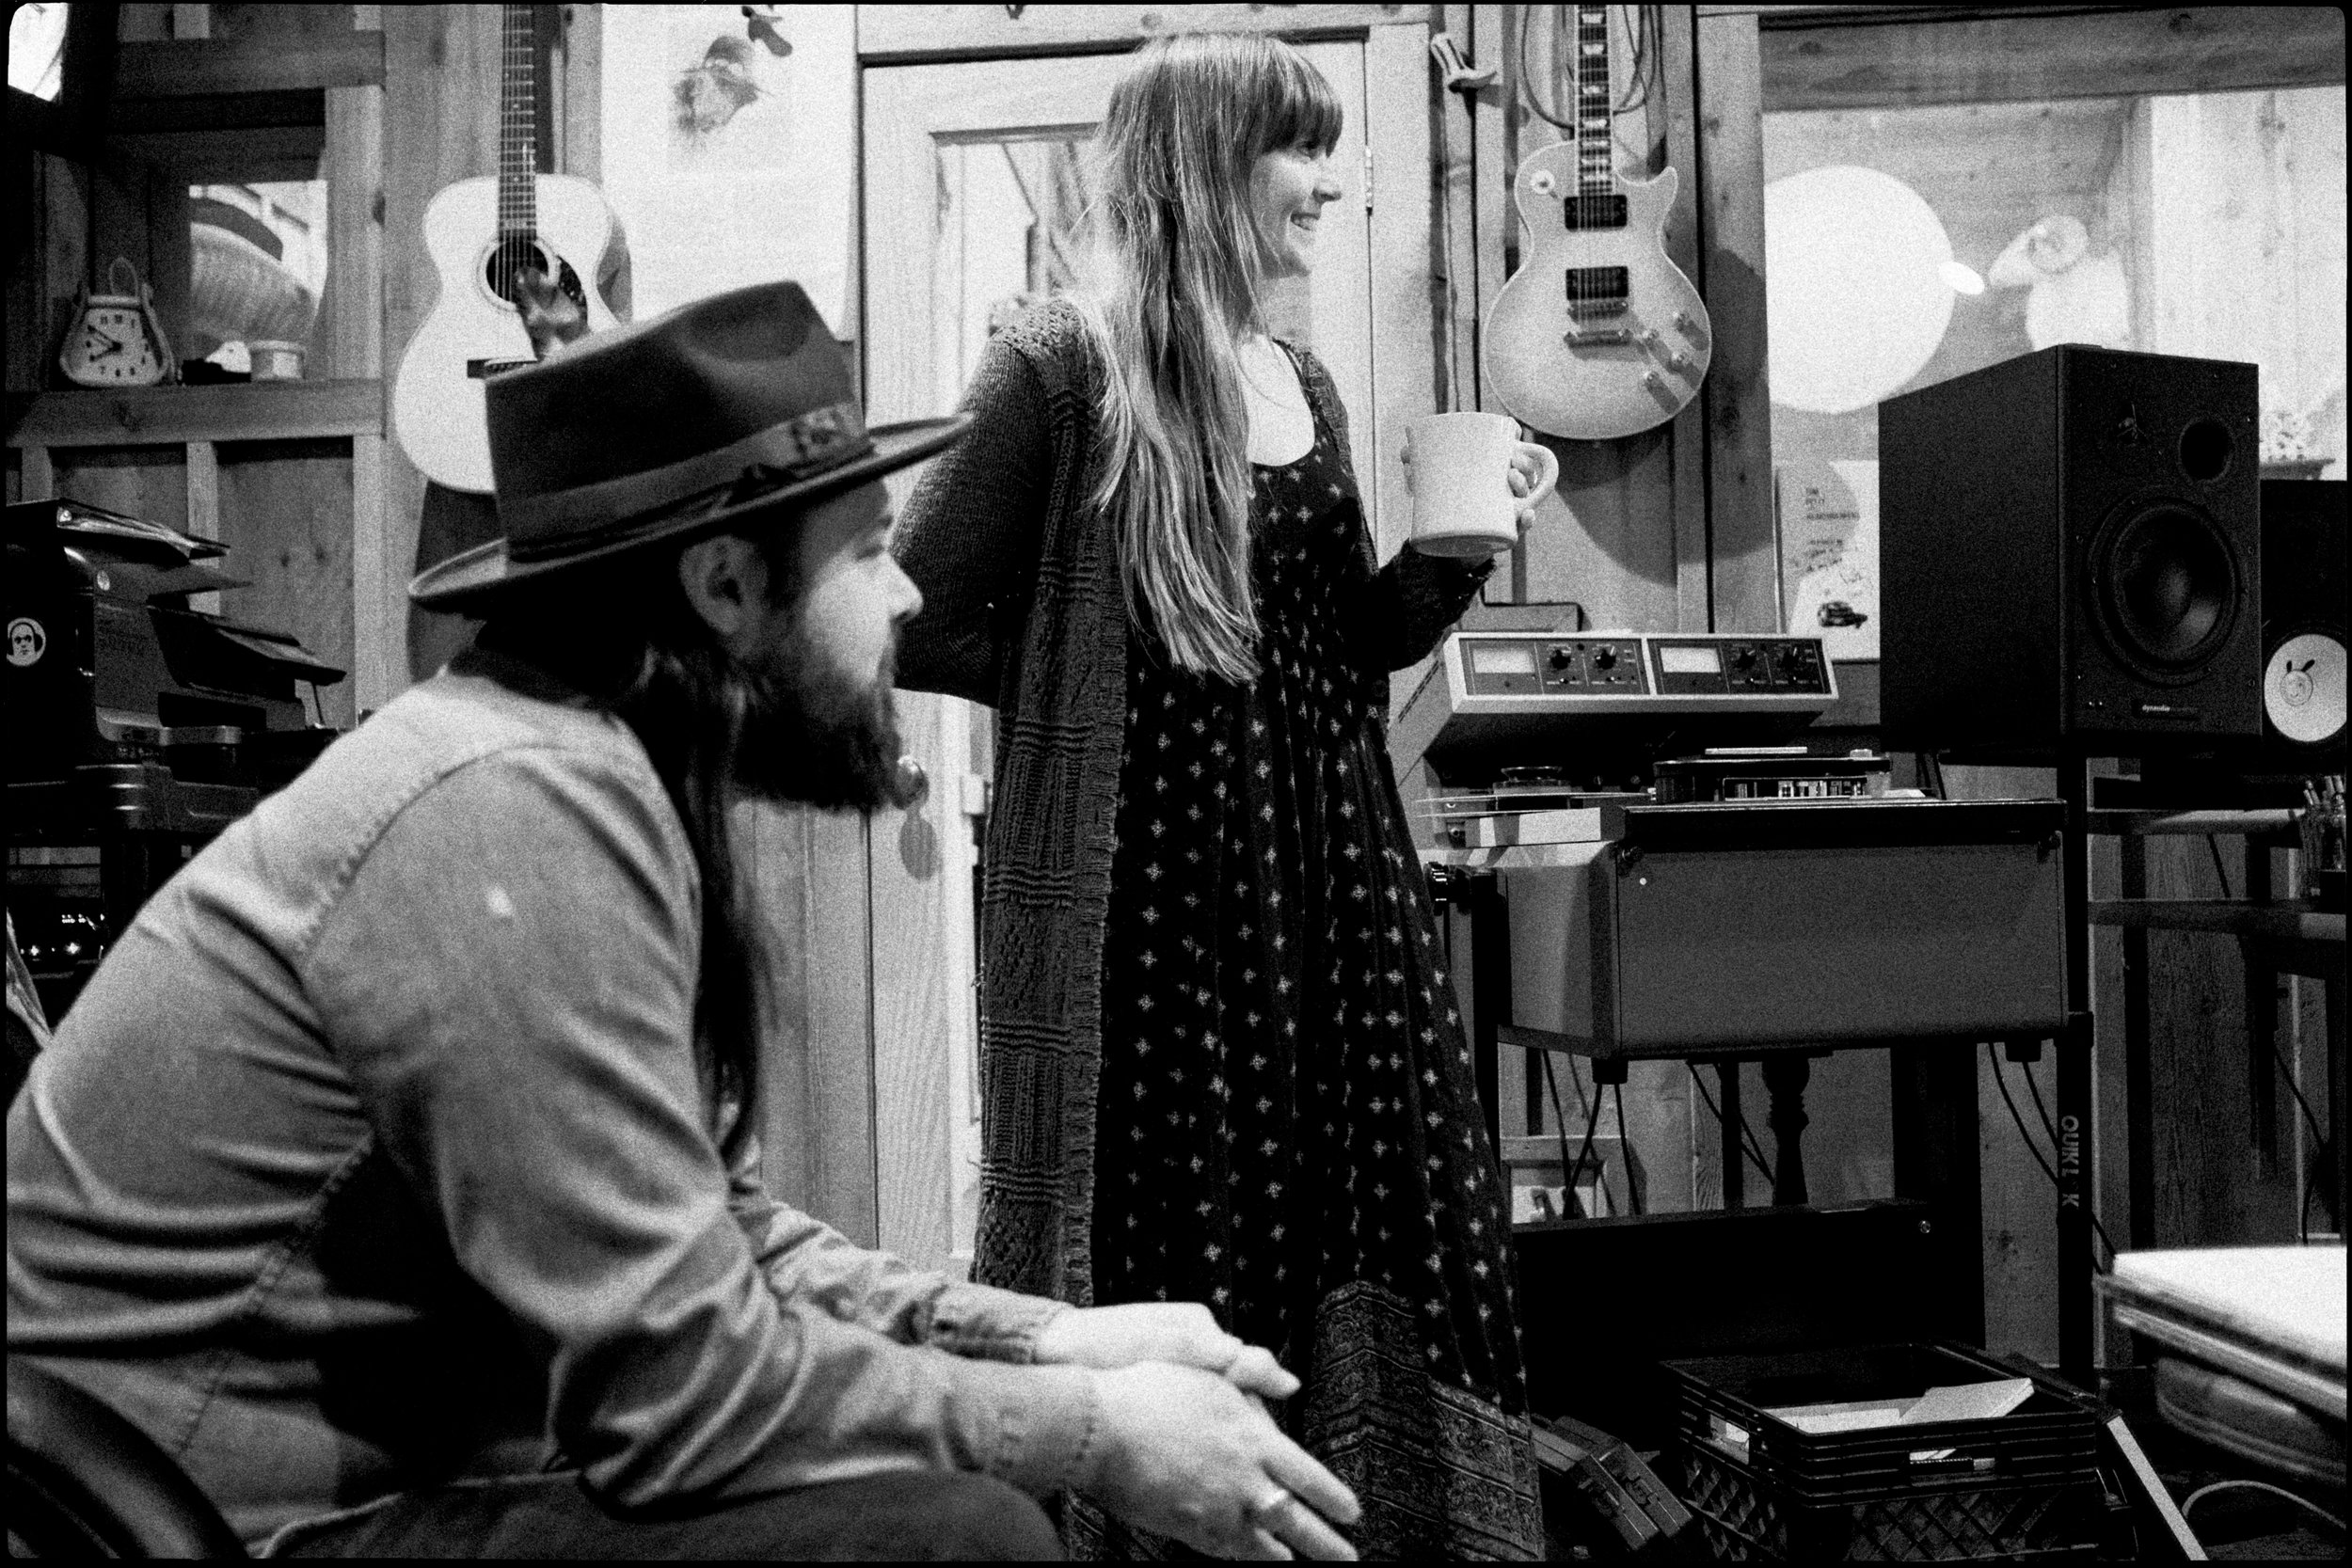 Courtney Marie Andrews and Caleb Caudle at Cash Cabin